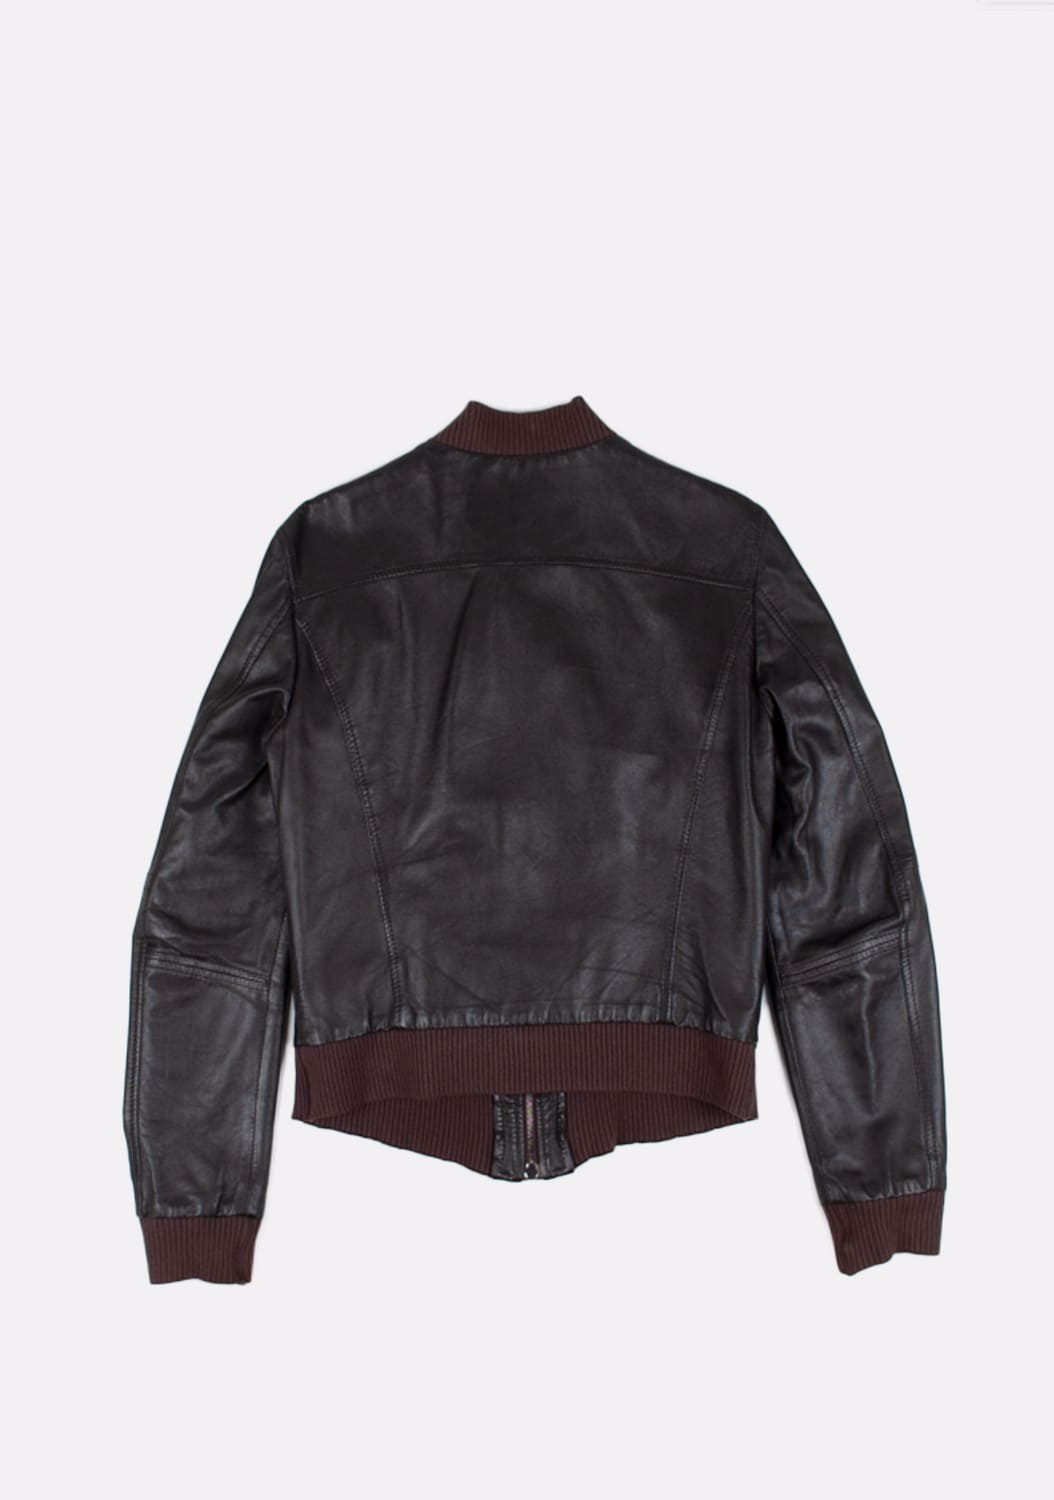 Dolce&Gabbana-Leather-Bomber-Men-Jacket-Size 46-ITA-urocklt (3)